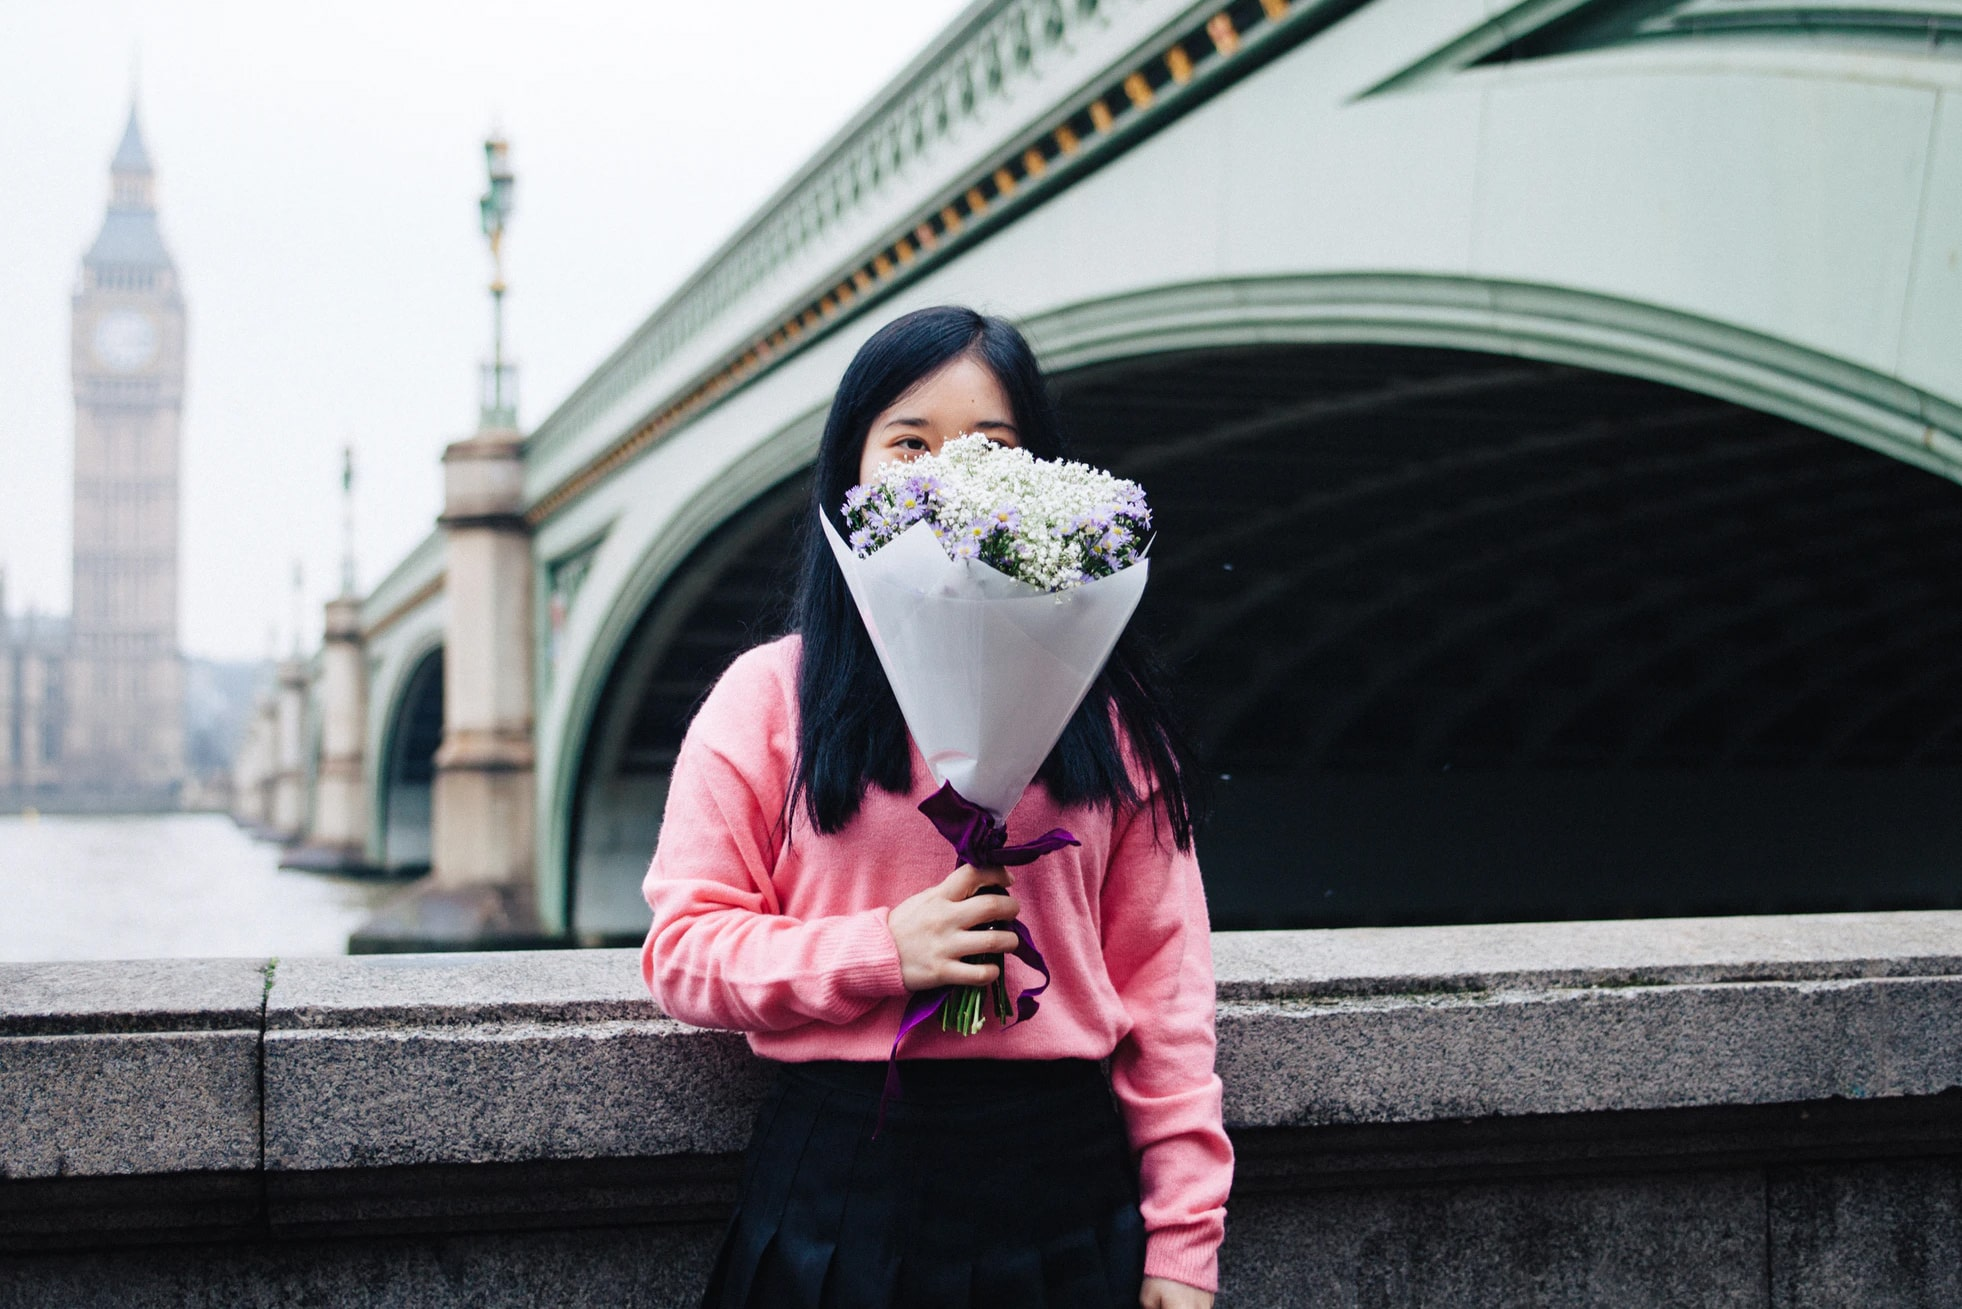 Meaning Behind That Big Bouquet of Roses